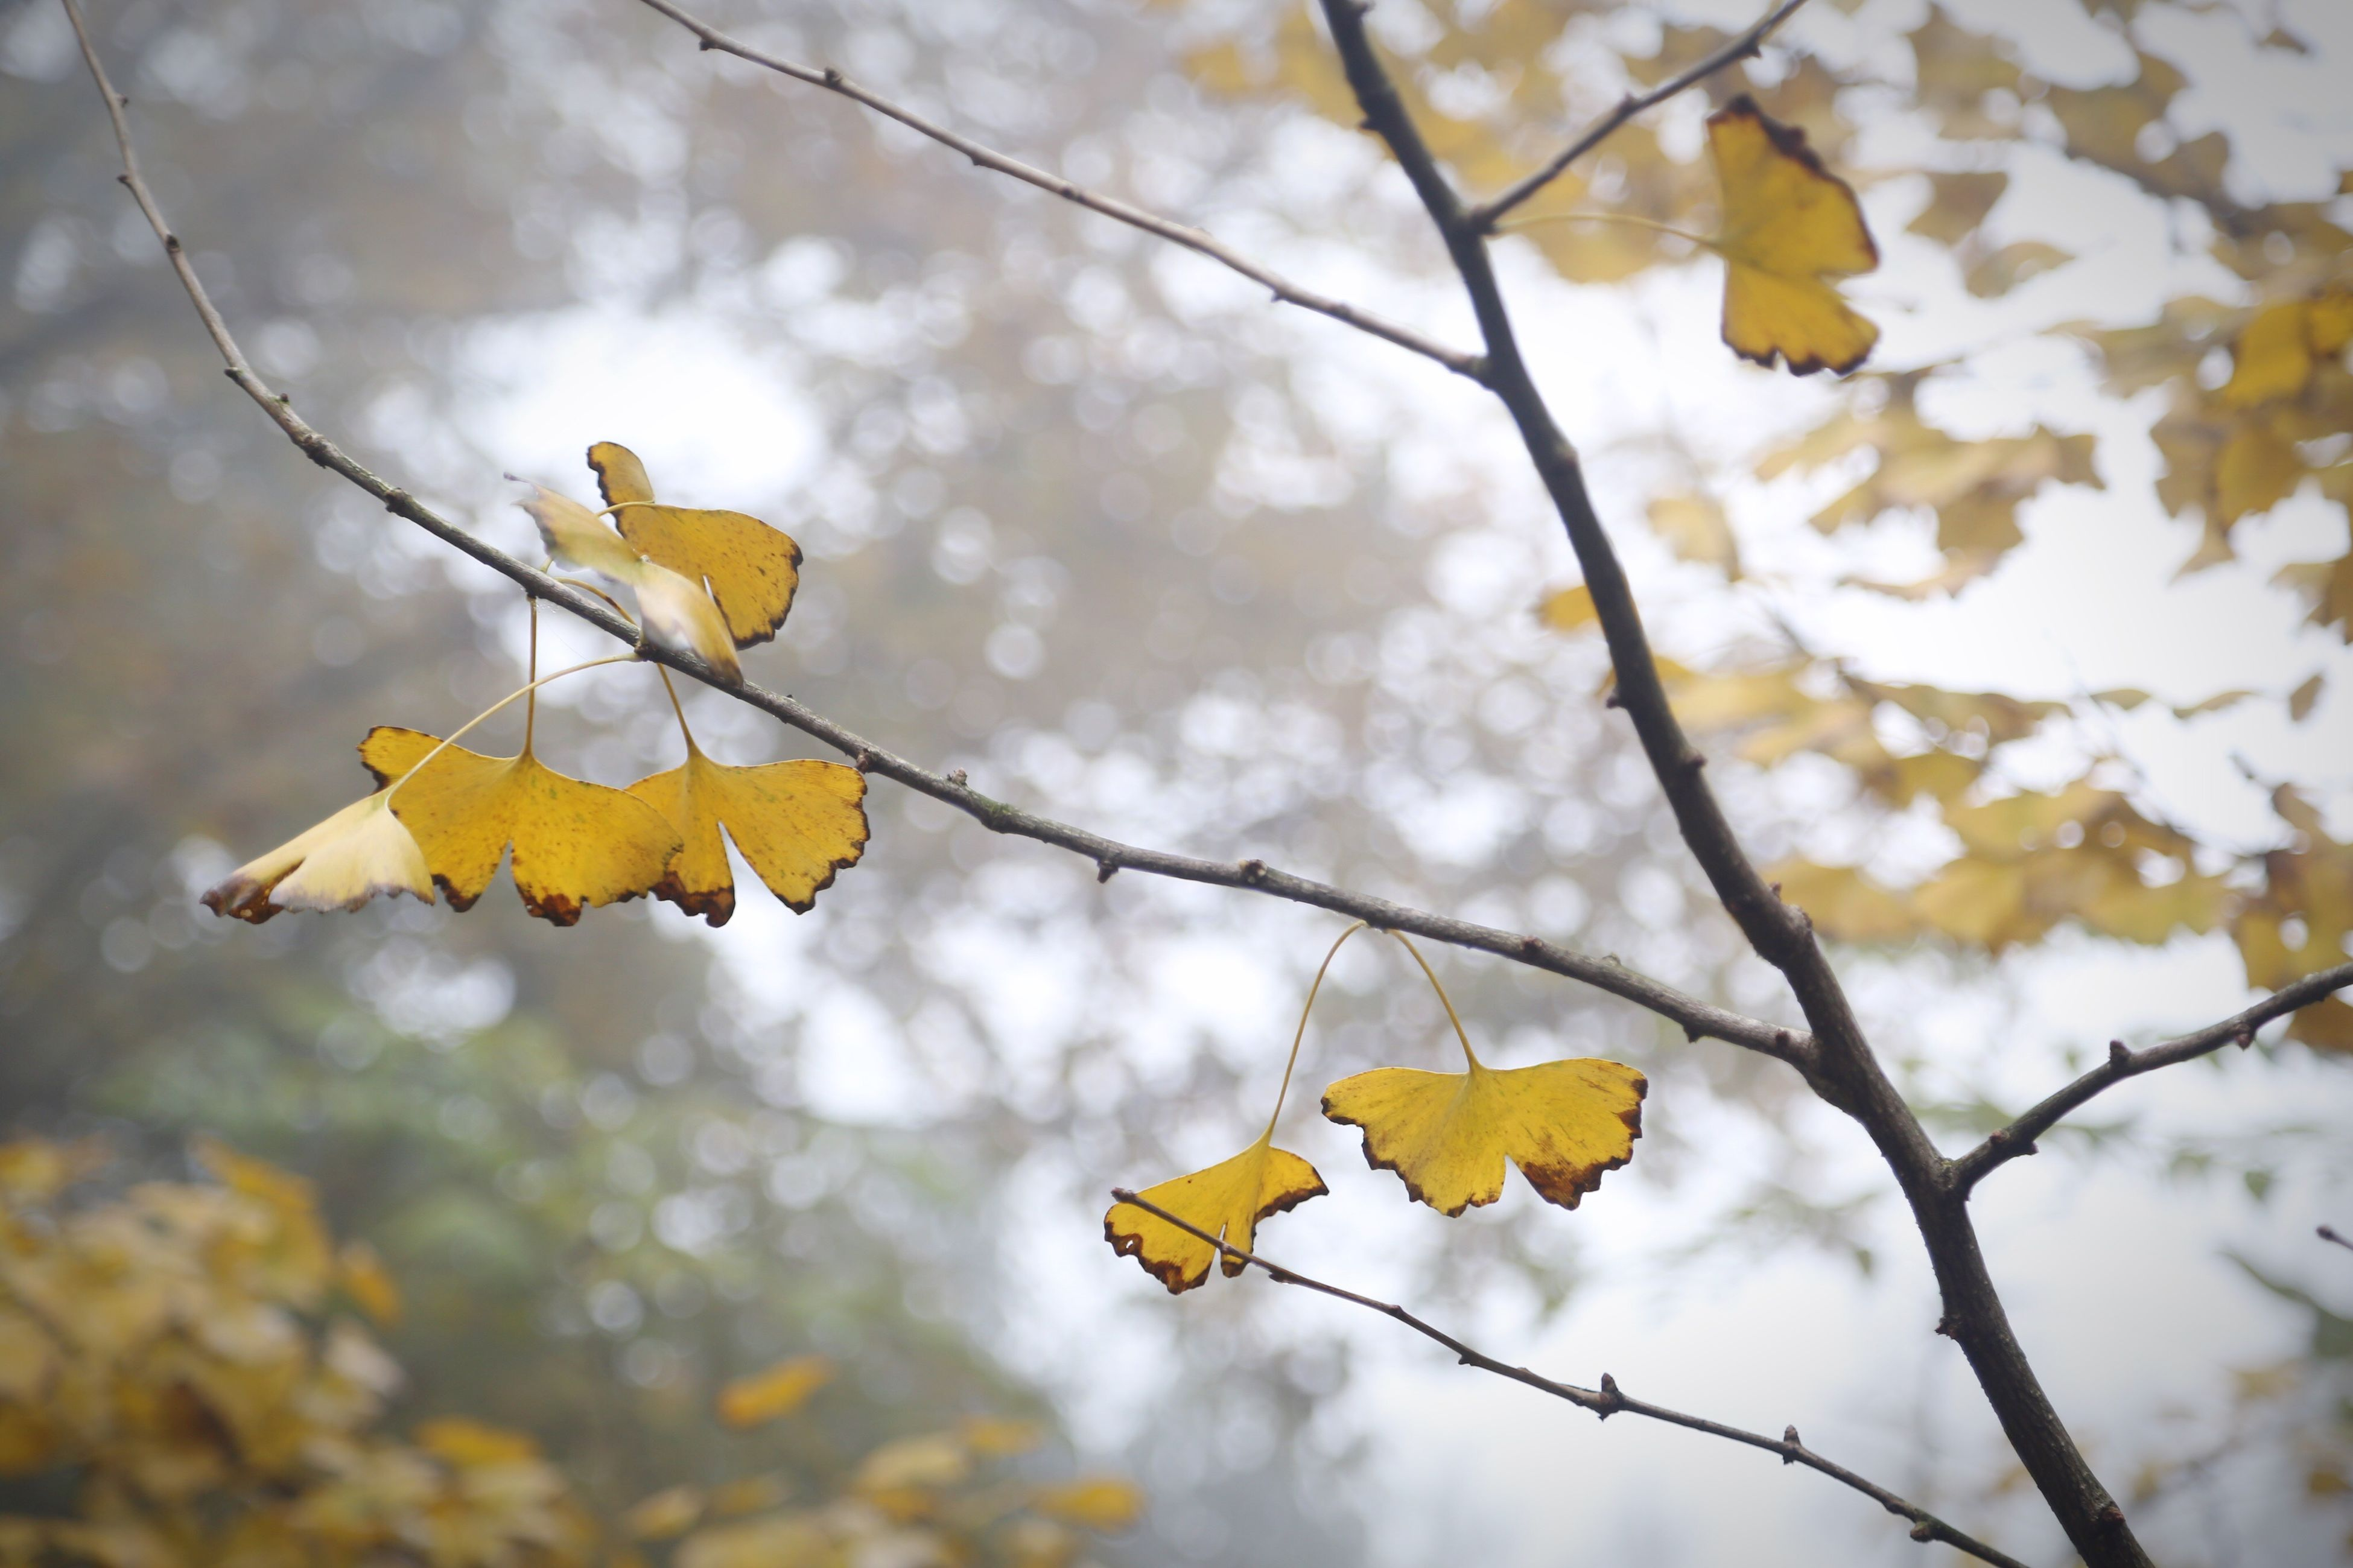 autumn, nature, leaf, change, beauty in nature, tree, growth, yellow, focus on foreground, outdoors, no people, day, low angle view, leaves, branch, close-up